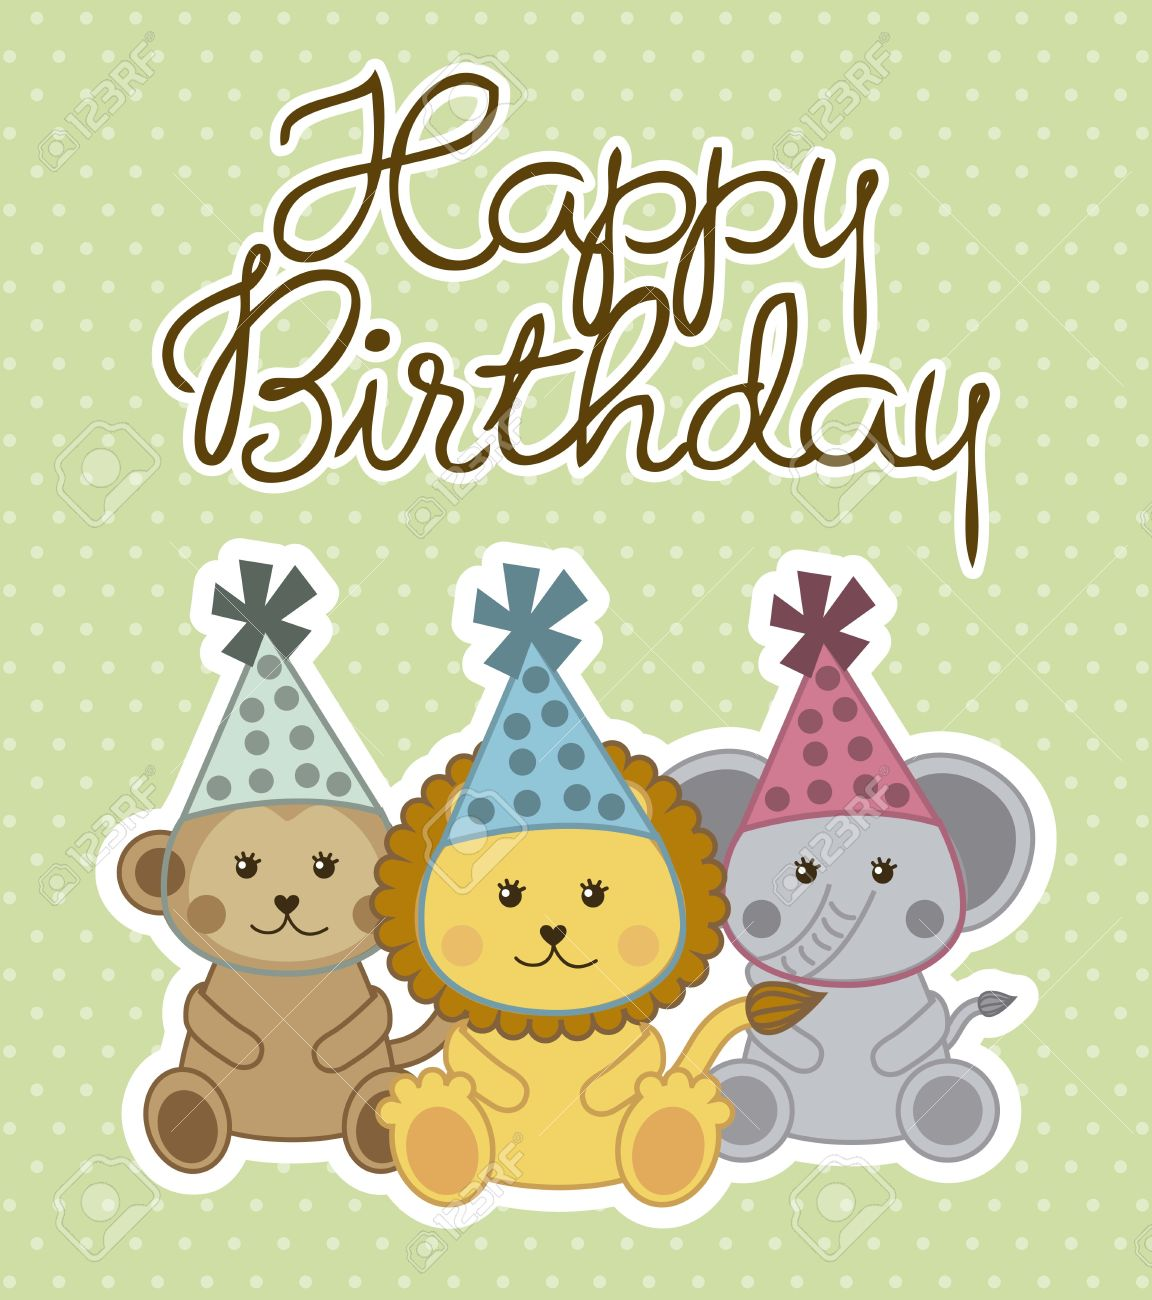 Happy Birthday Card With Cute Animals Vector Illustration – Happy Birthday Card Cute